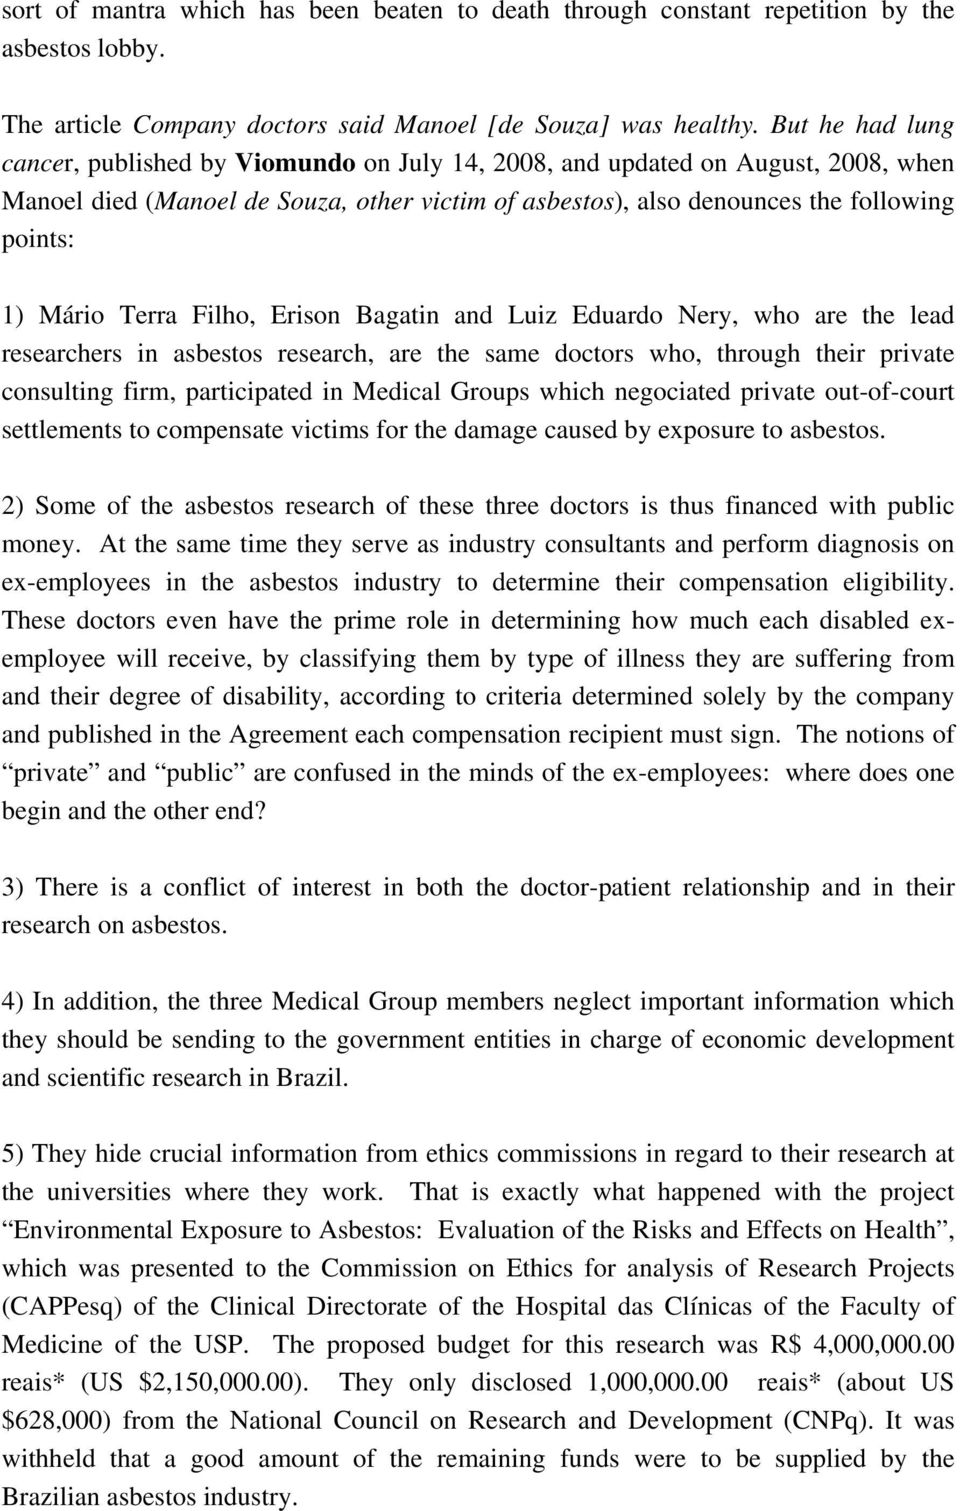 Mário Terra Filho, Erison Bagatin and Luiz Eduardo Nery, who are the lead researchers in asbestos research, are the same doctors who, through their private consulting firm, participated in Medical